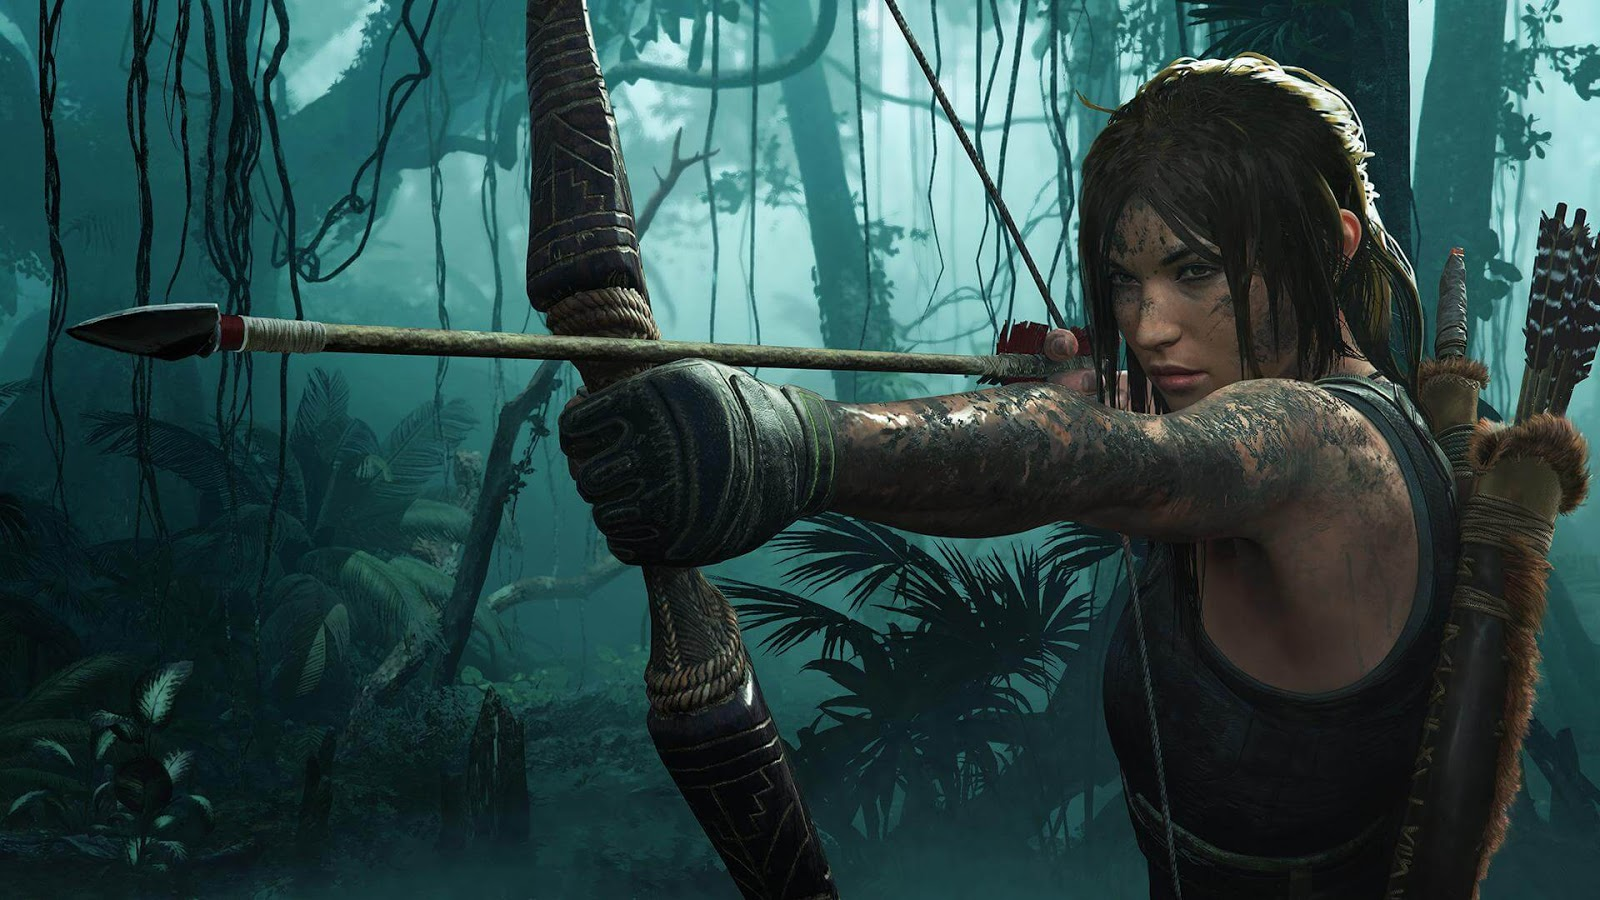 Shadow Of The Tomb Raider PC Patch 4 Focuses Fixes Of Issues, Including Some Related To 100% Completion, Dolby Atmos, And Steam Input.